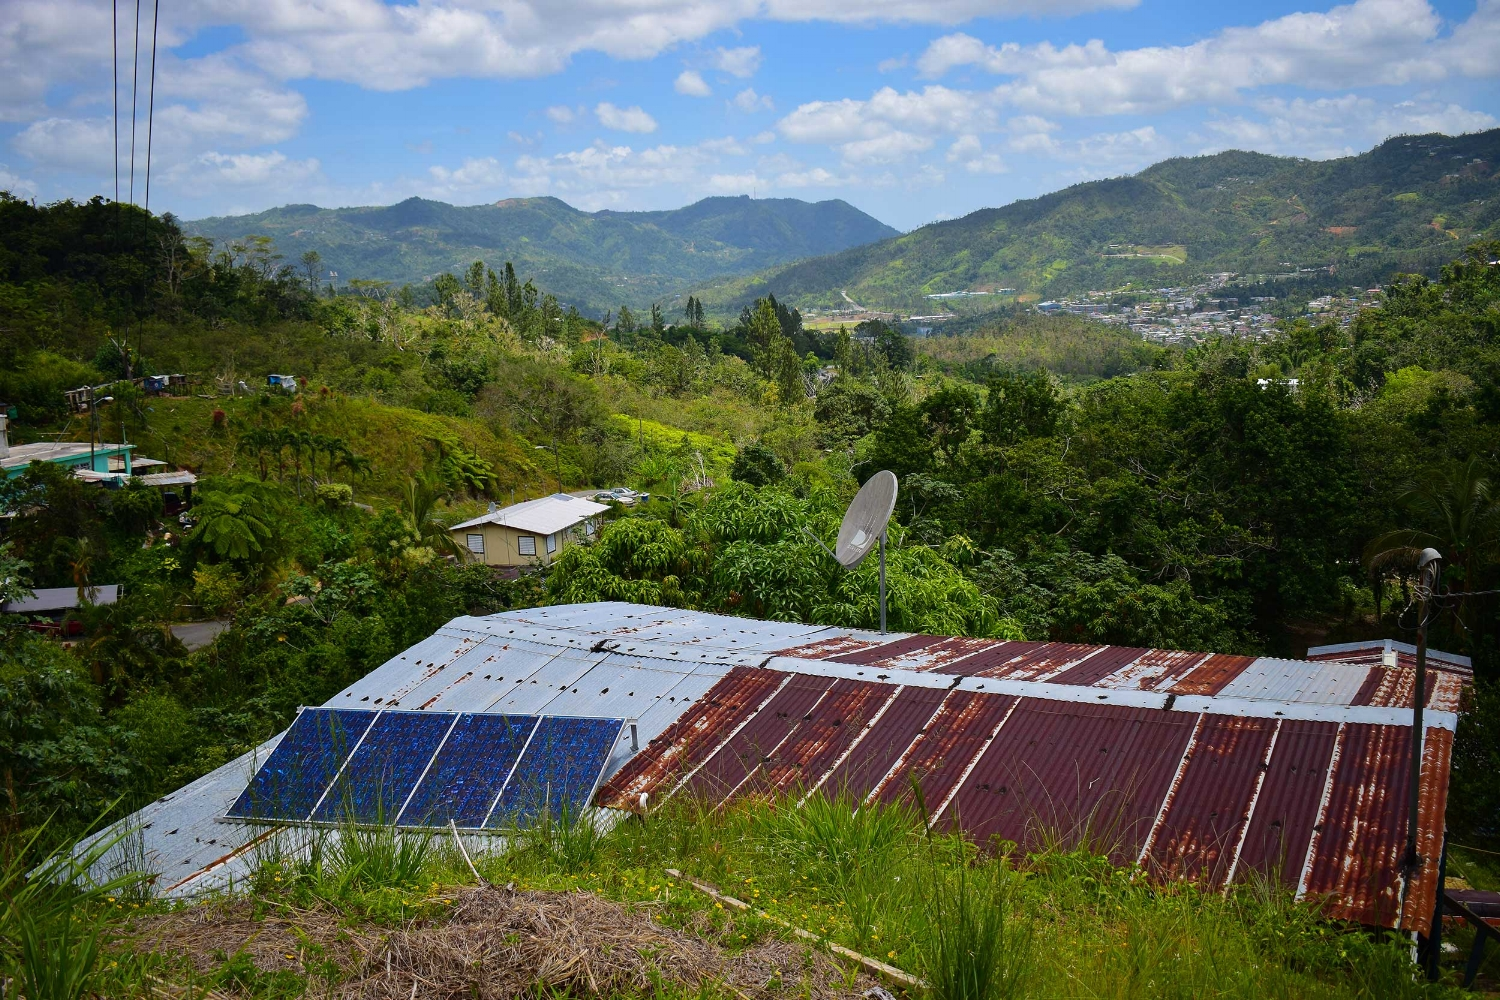 A solar array in the community of El Hoyo, Adjuntas, Puerto Rico.